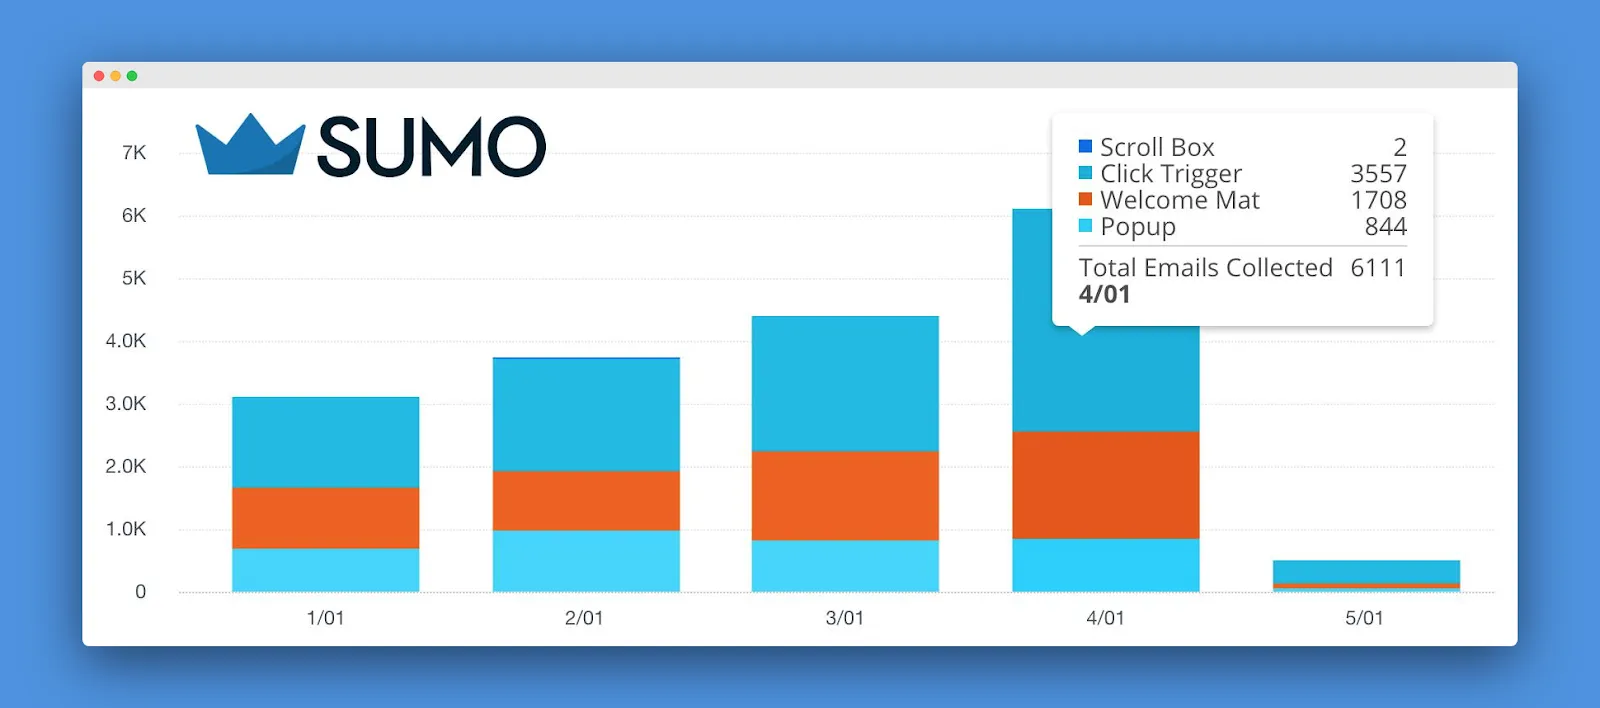 Sumo's email list result by blog post - How To Double Your Email List (And Collect 10,000 Emails Every Month)